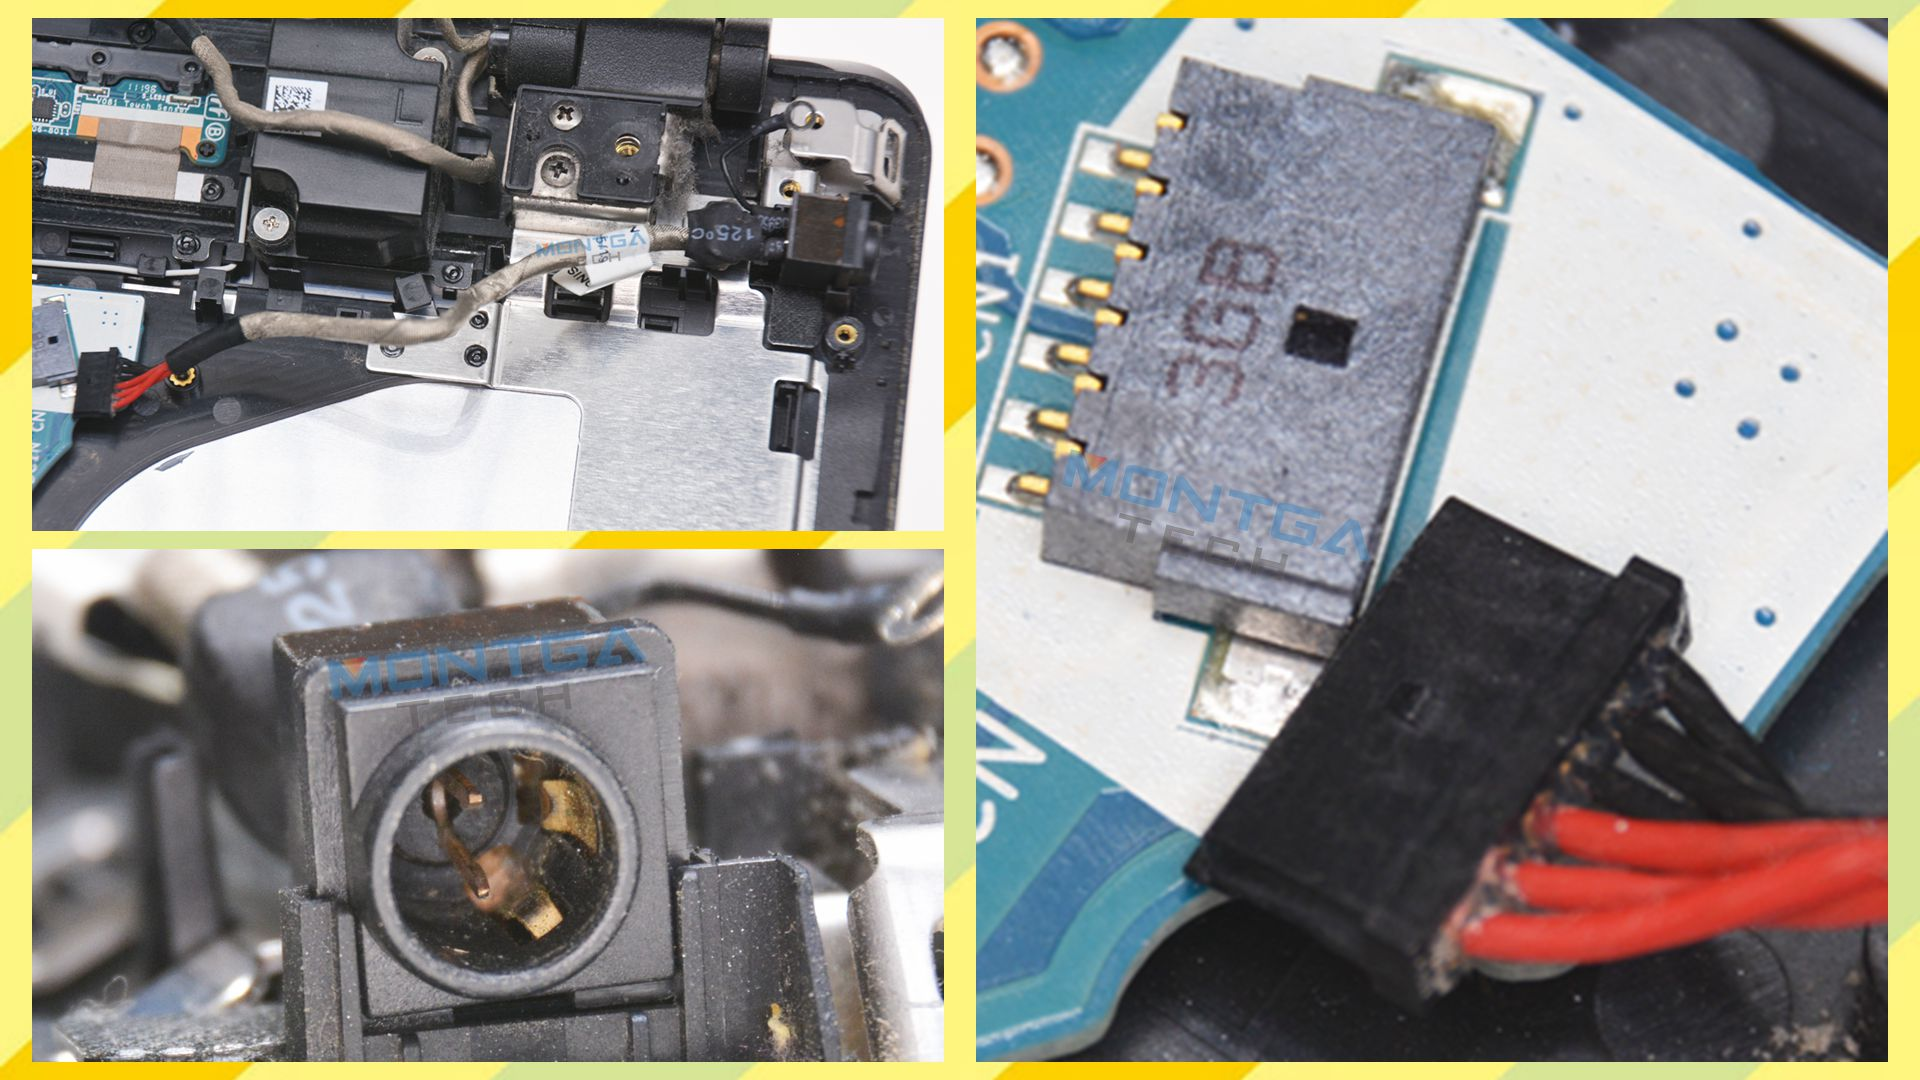 repair charging connector Sony VPCF233FX, repair DC Power Jack Sony VPCF233FX, repair DC IN Cable Sony VPCF233FX, repair Jack socket Sony VPCF233FX, repair plug Sony VPCF233FX, repair DC Alimantation Sony VPCF233FX, replace charging connector Sony VPCF233FX, replace DC Power Jack Sony VPCF233FX, replace DC IN Cable Sony VPCF233FX, replace Jack socket Sony VPCF233FX, replace plug Sony VPCF233FX, replace DC Alimantation Sony VPCF233FX,